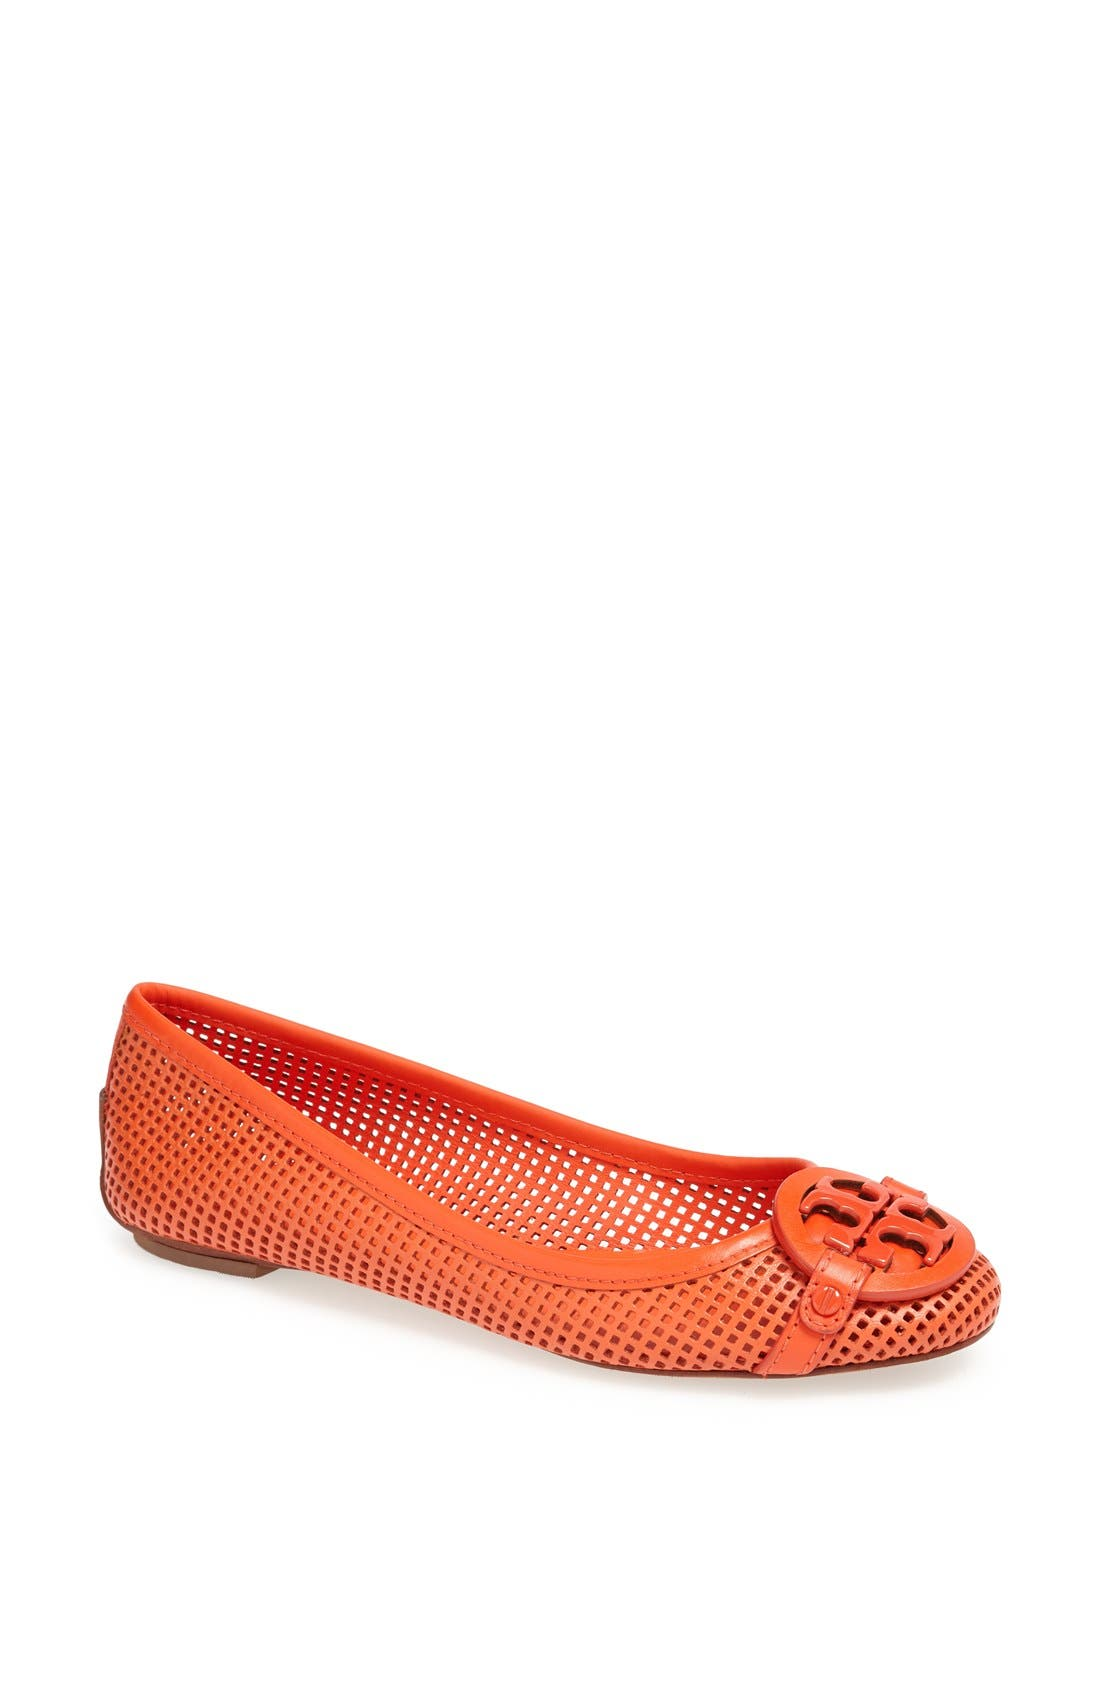 Alternate Image 1 Selected - Tory Burch 'Aaden' Ballet Flat